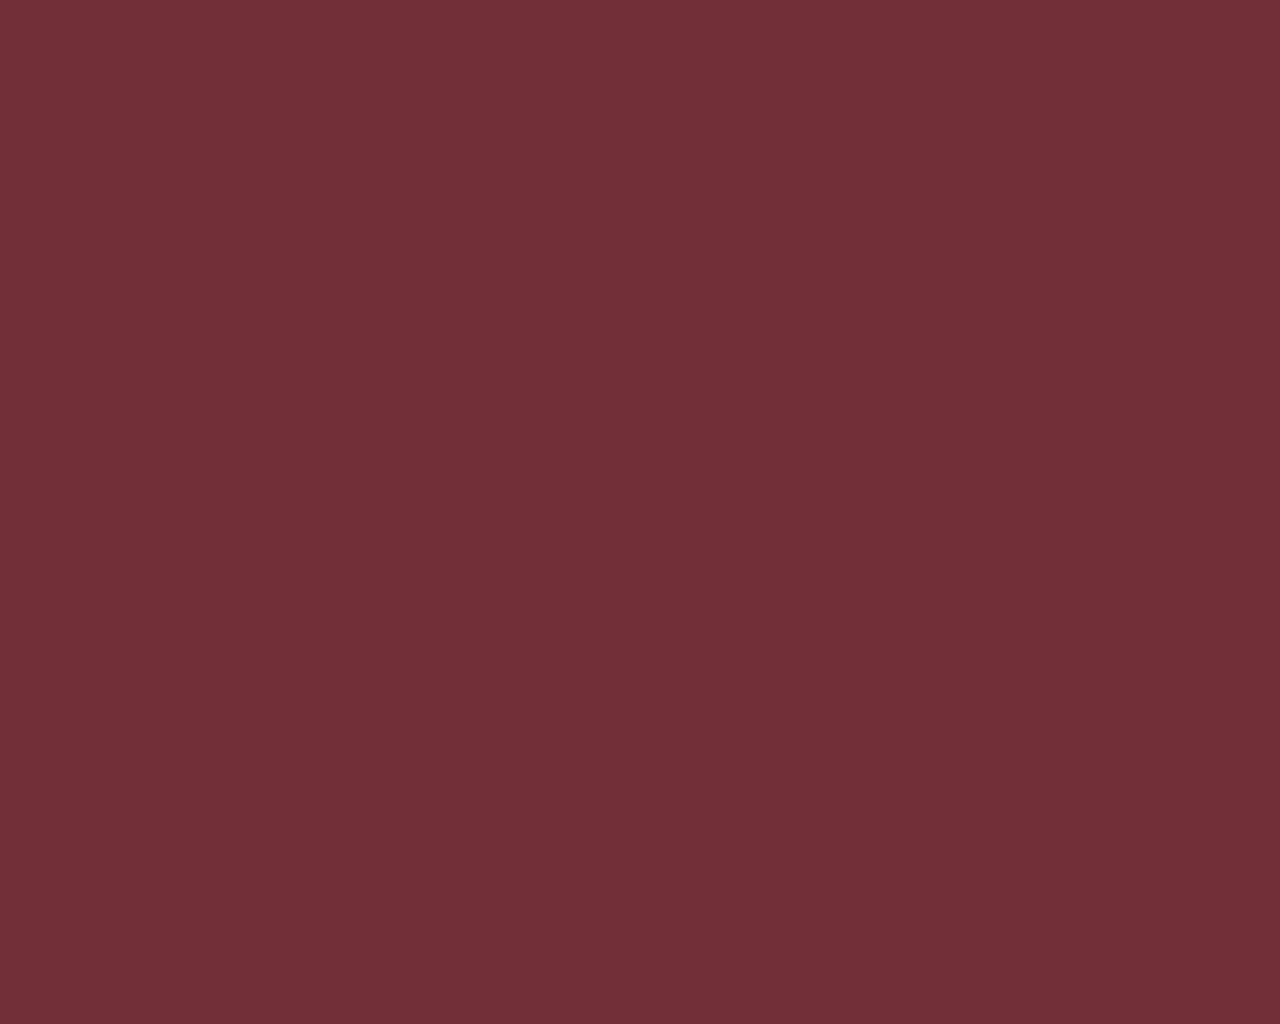 1280x1024 Wine Solid Color Background